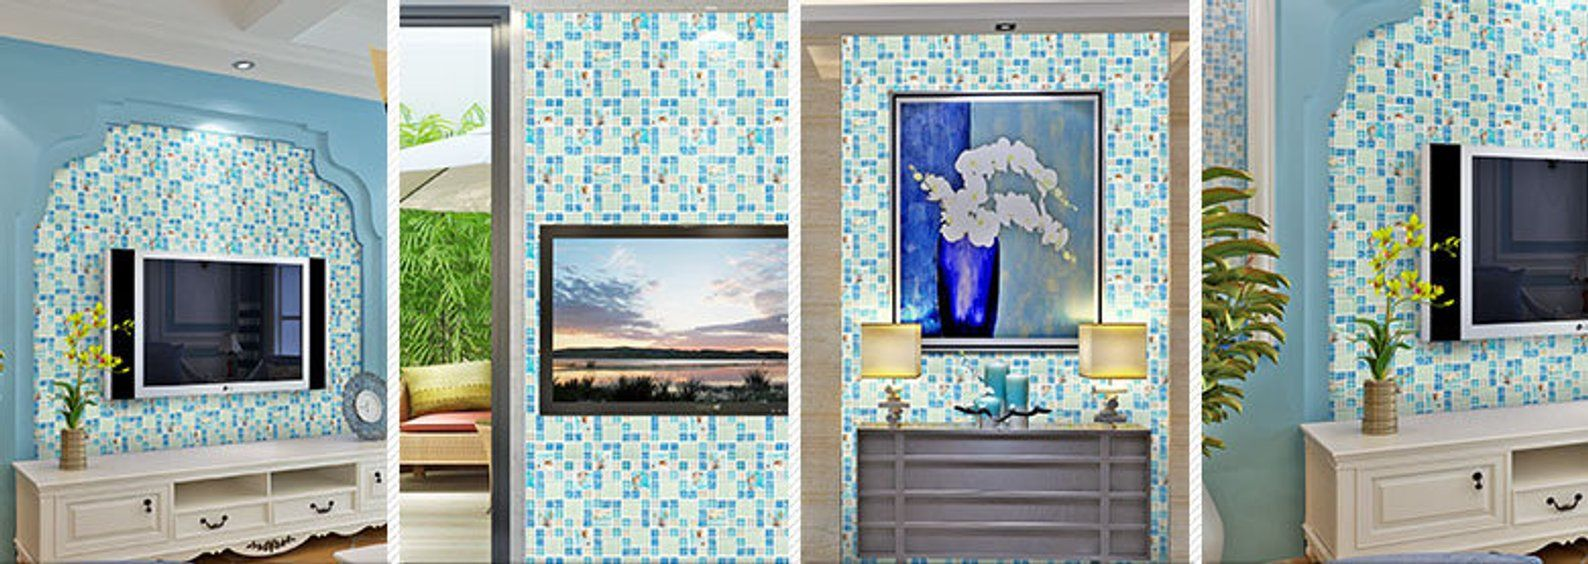 Blue and Iridescent White Glass Tile with Conch & Shells